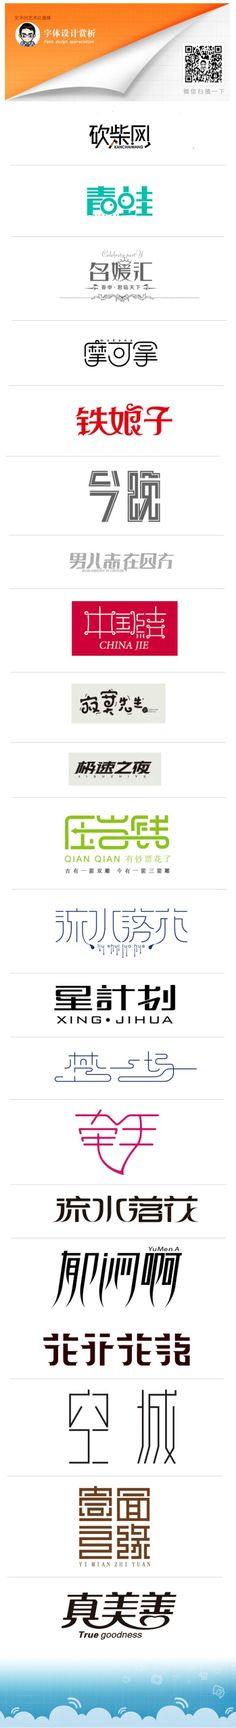 【Chinese design, The world see  】字体设计